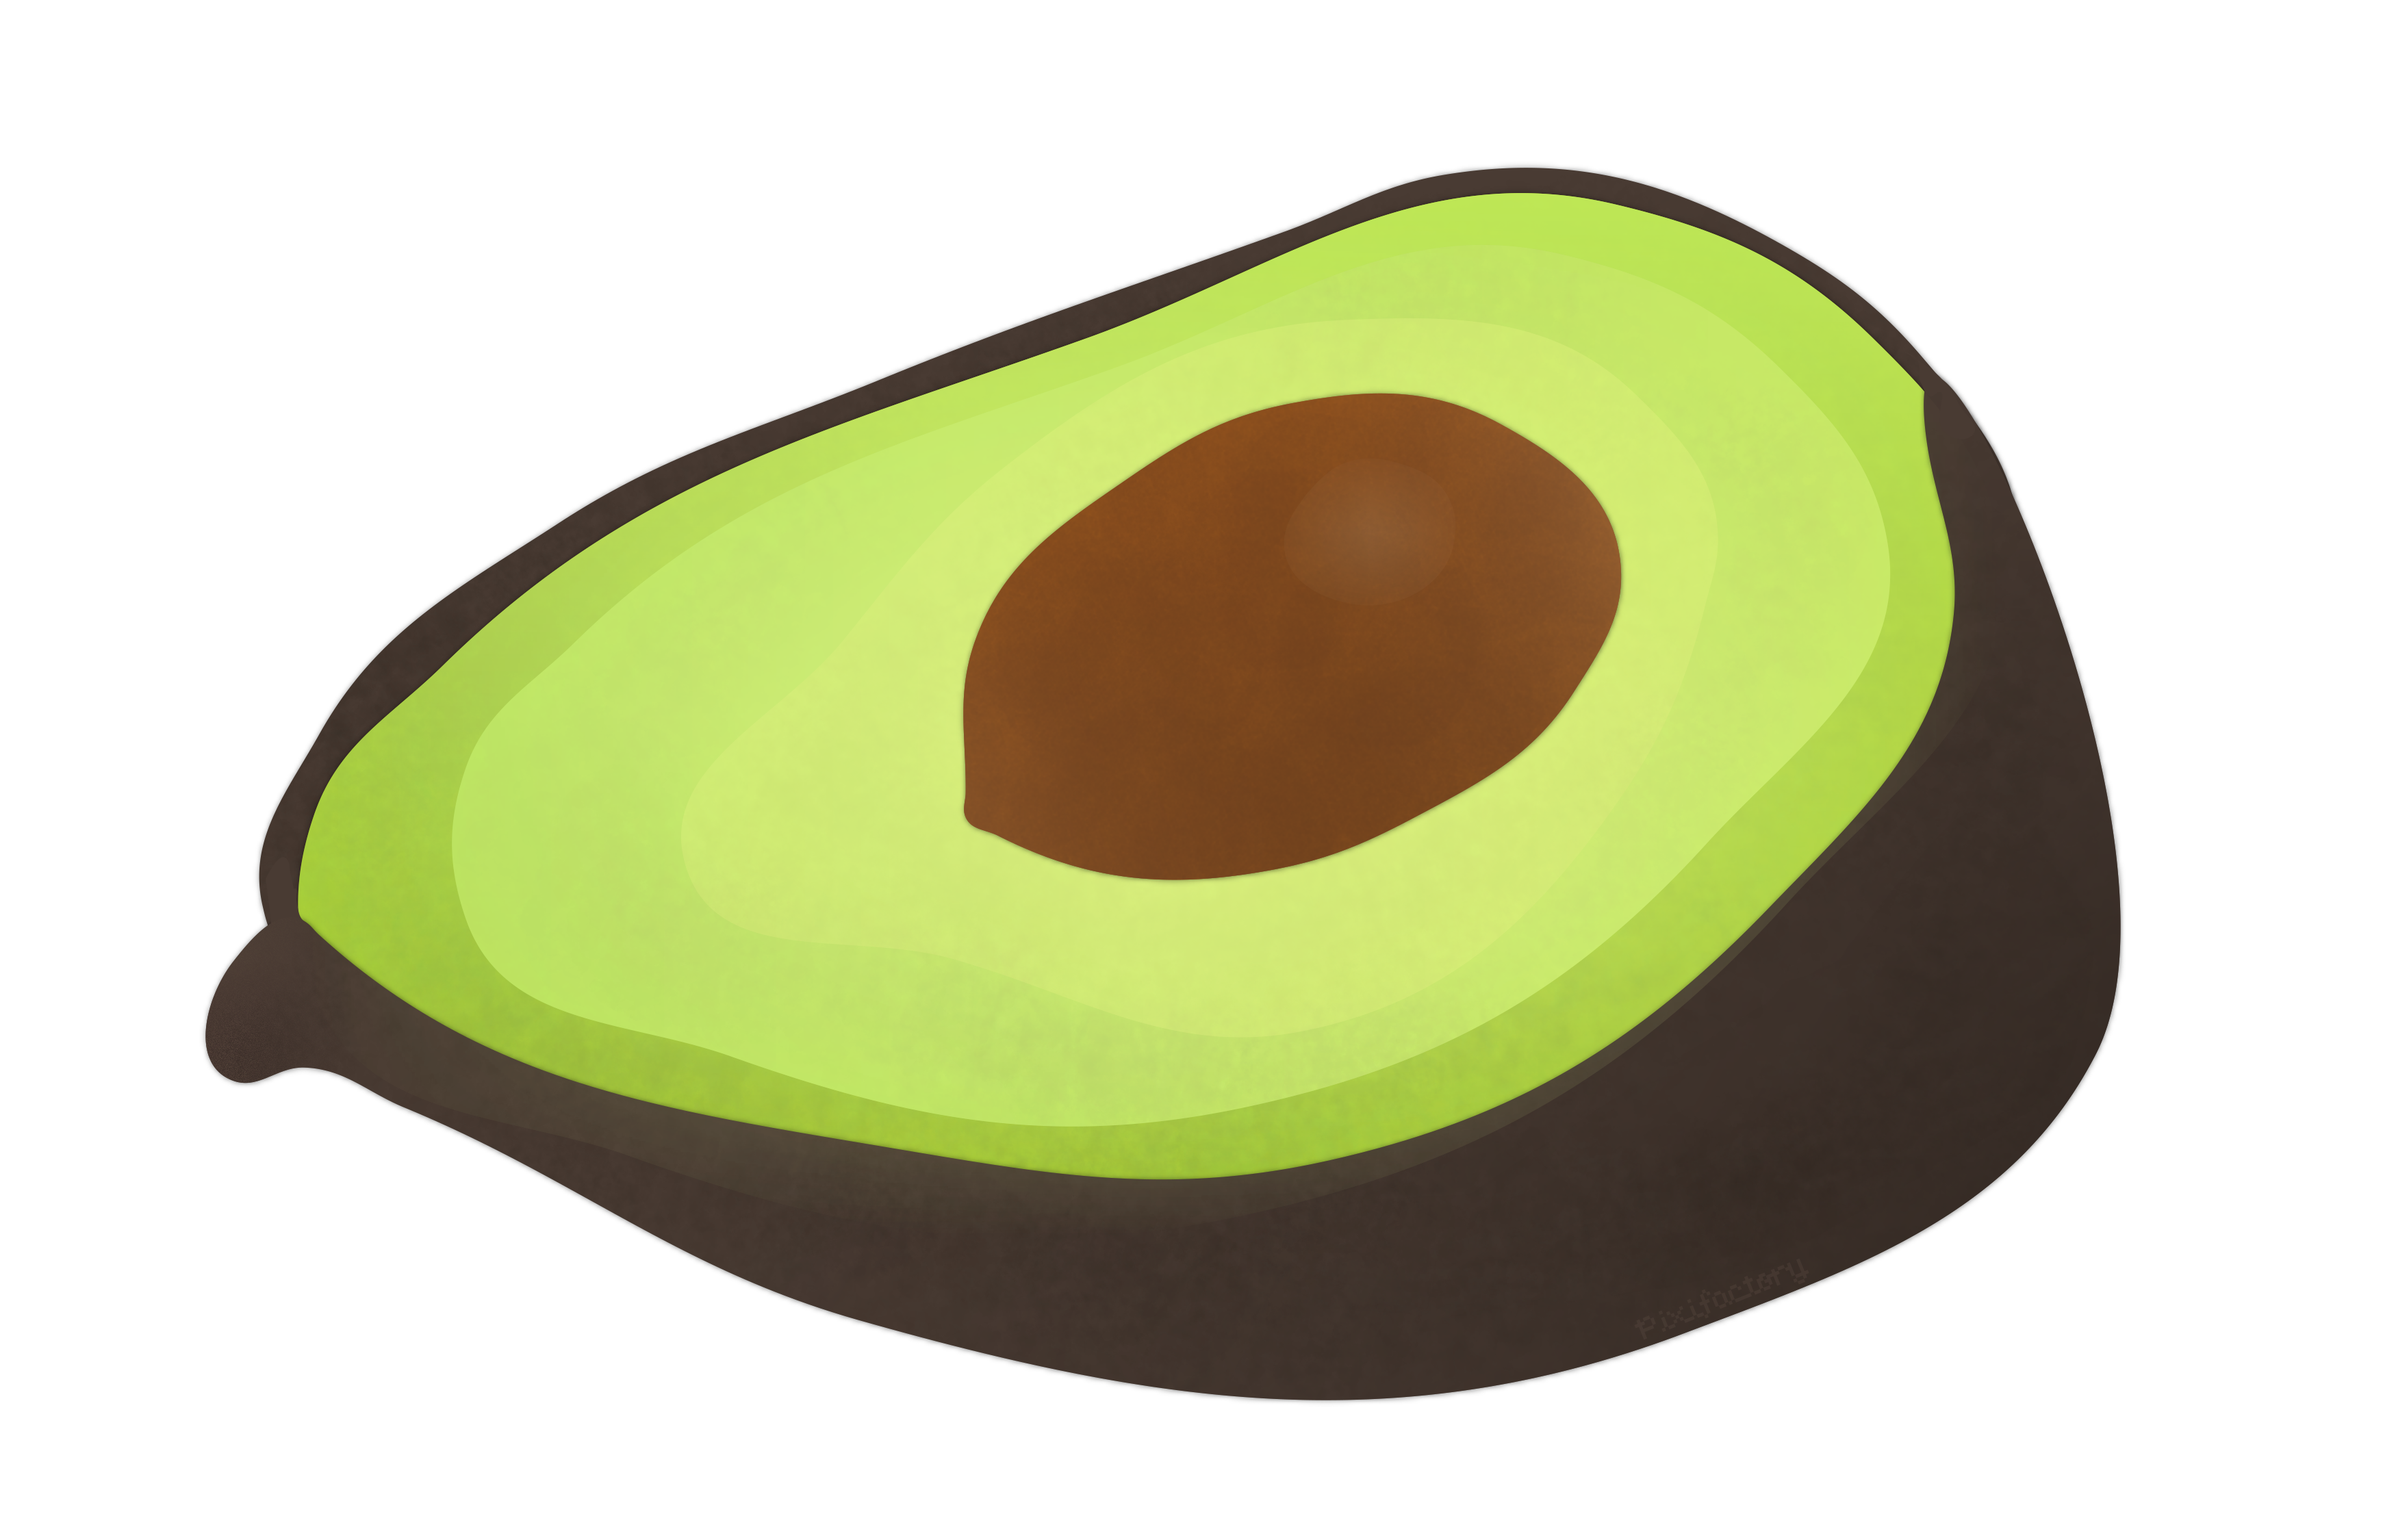 Avocado clipart green veggy. Vegetable clipground with transparent